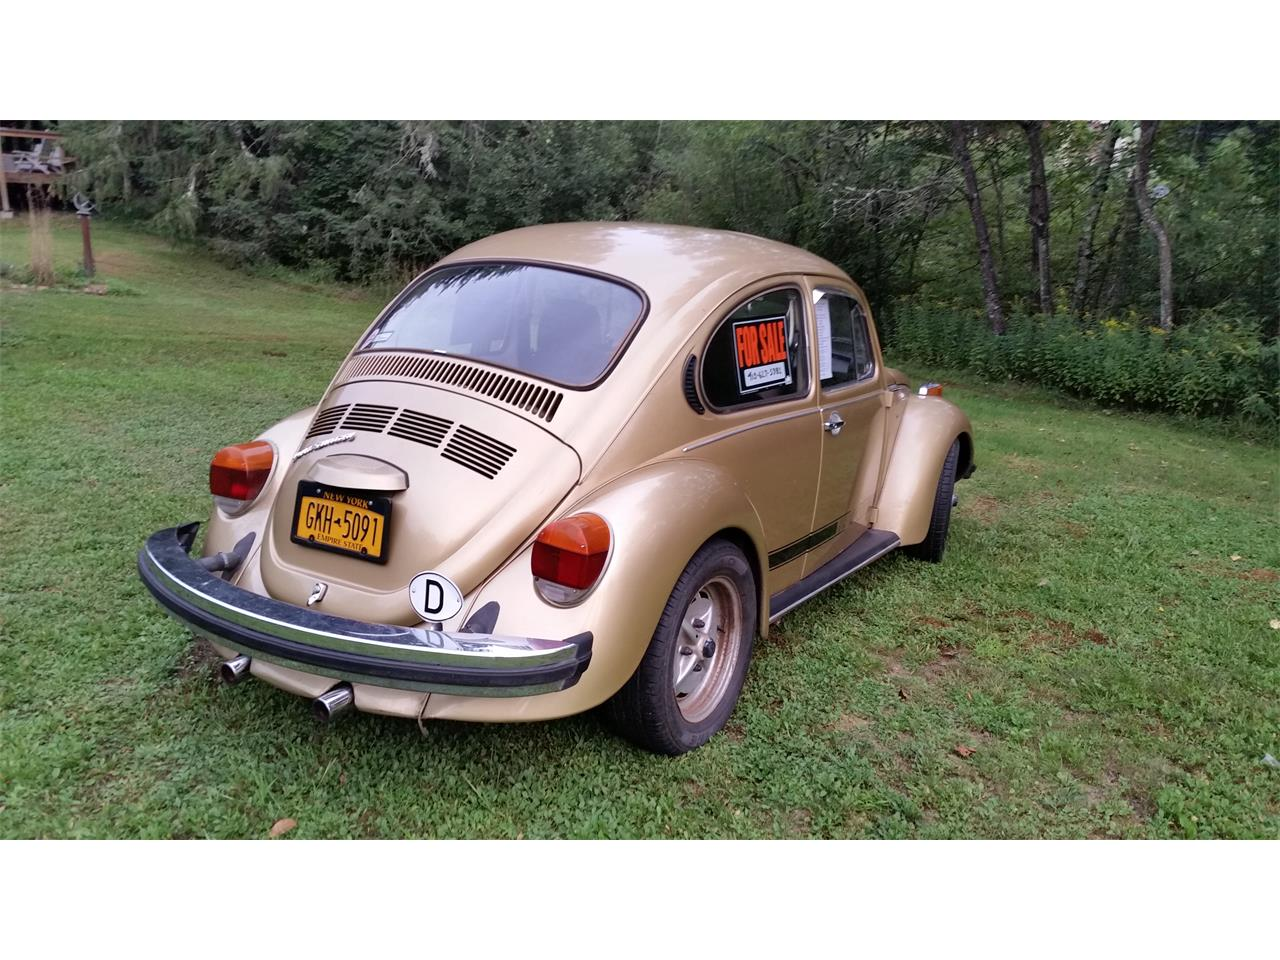 Large Picture of '74 Super Beetle - $10,500.00 Offered by a Private Seller - OGY2